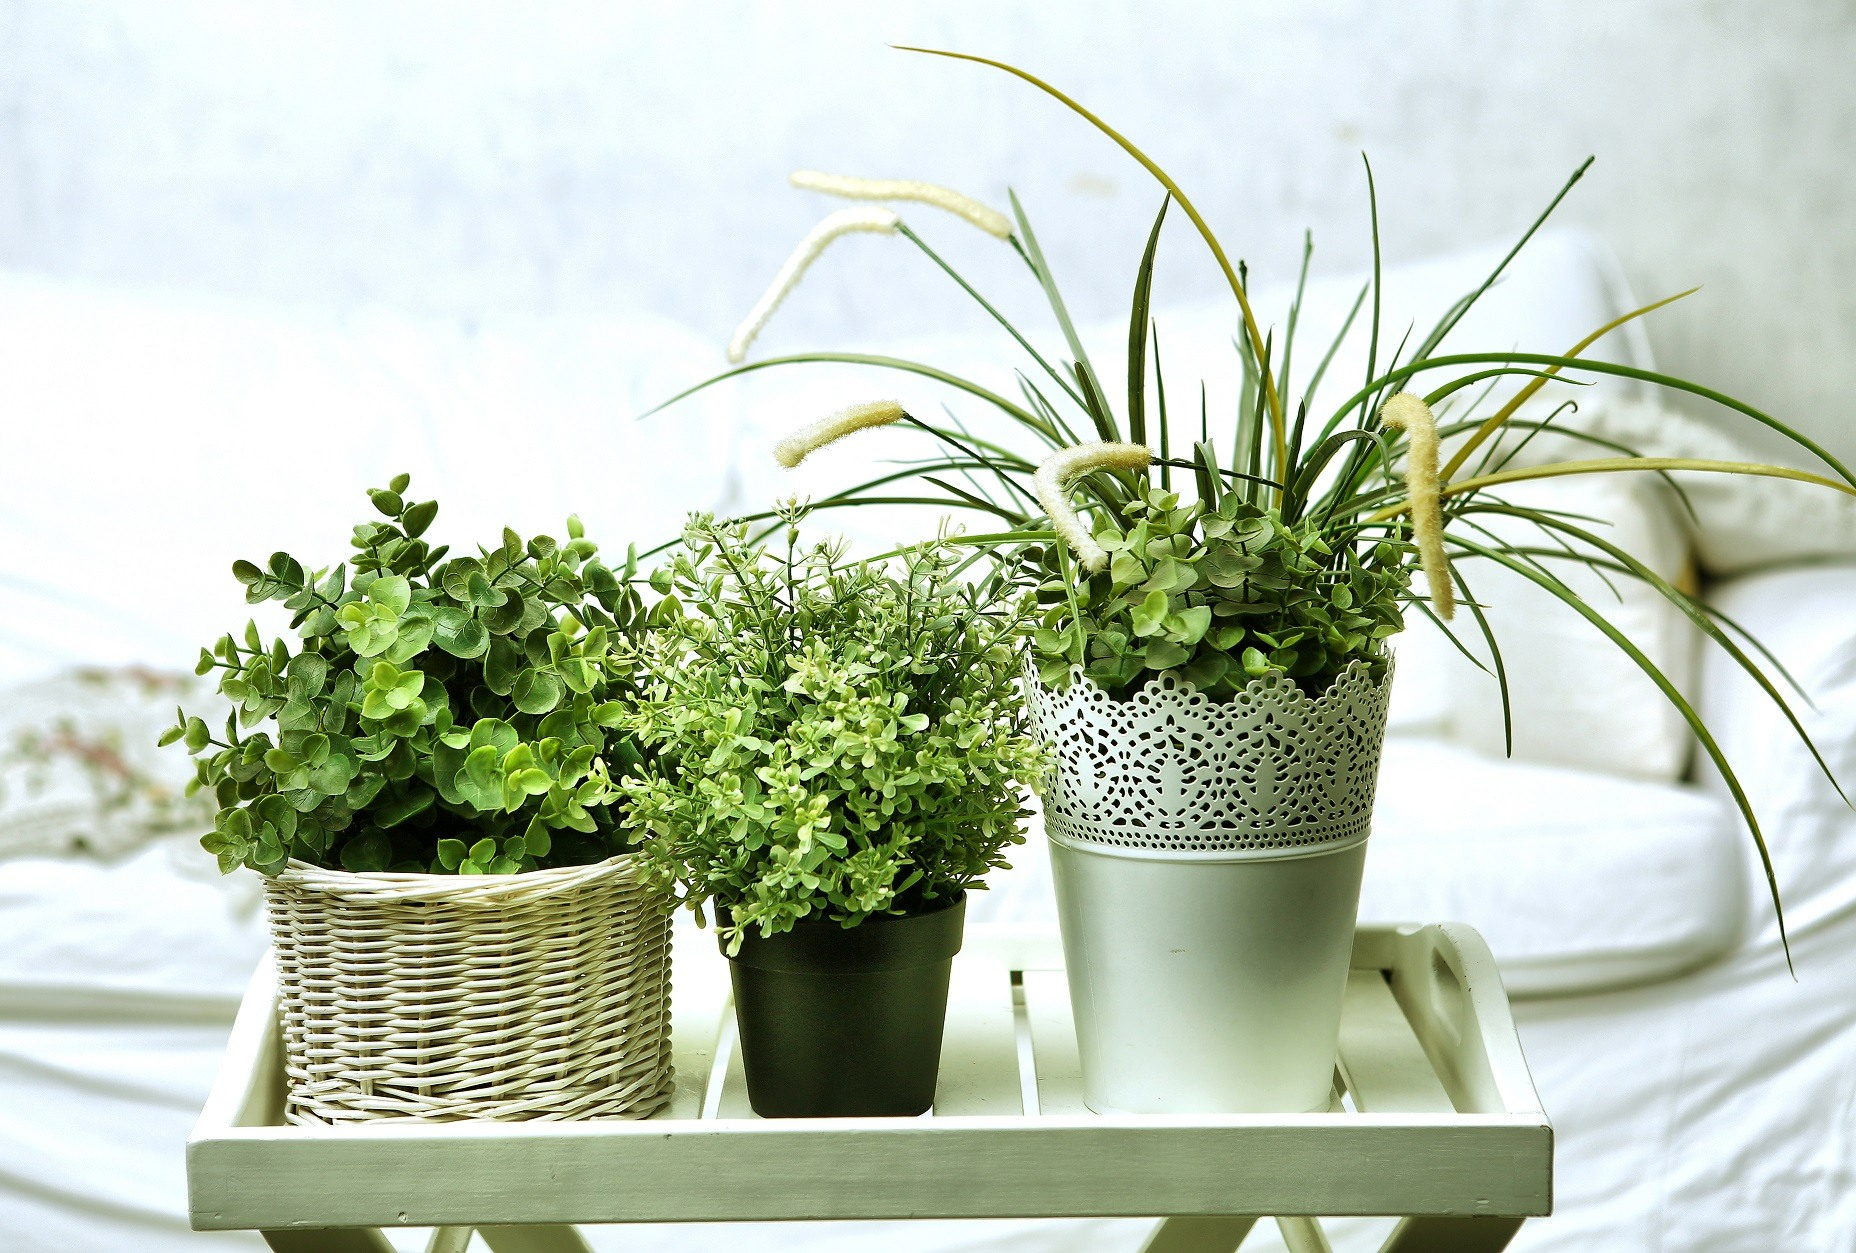 house plants in white pots on the bedroom background